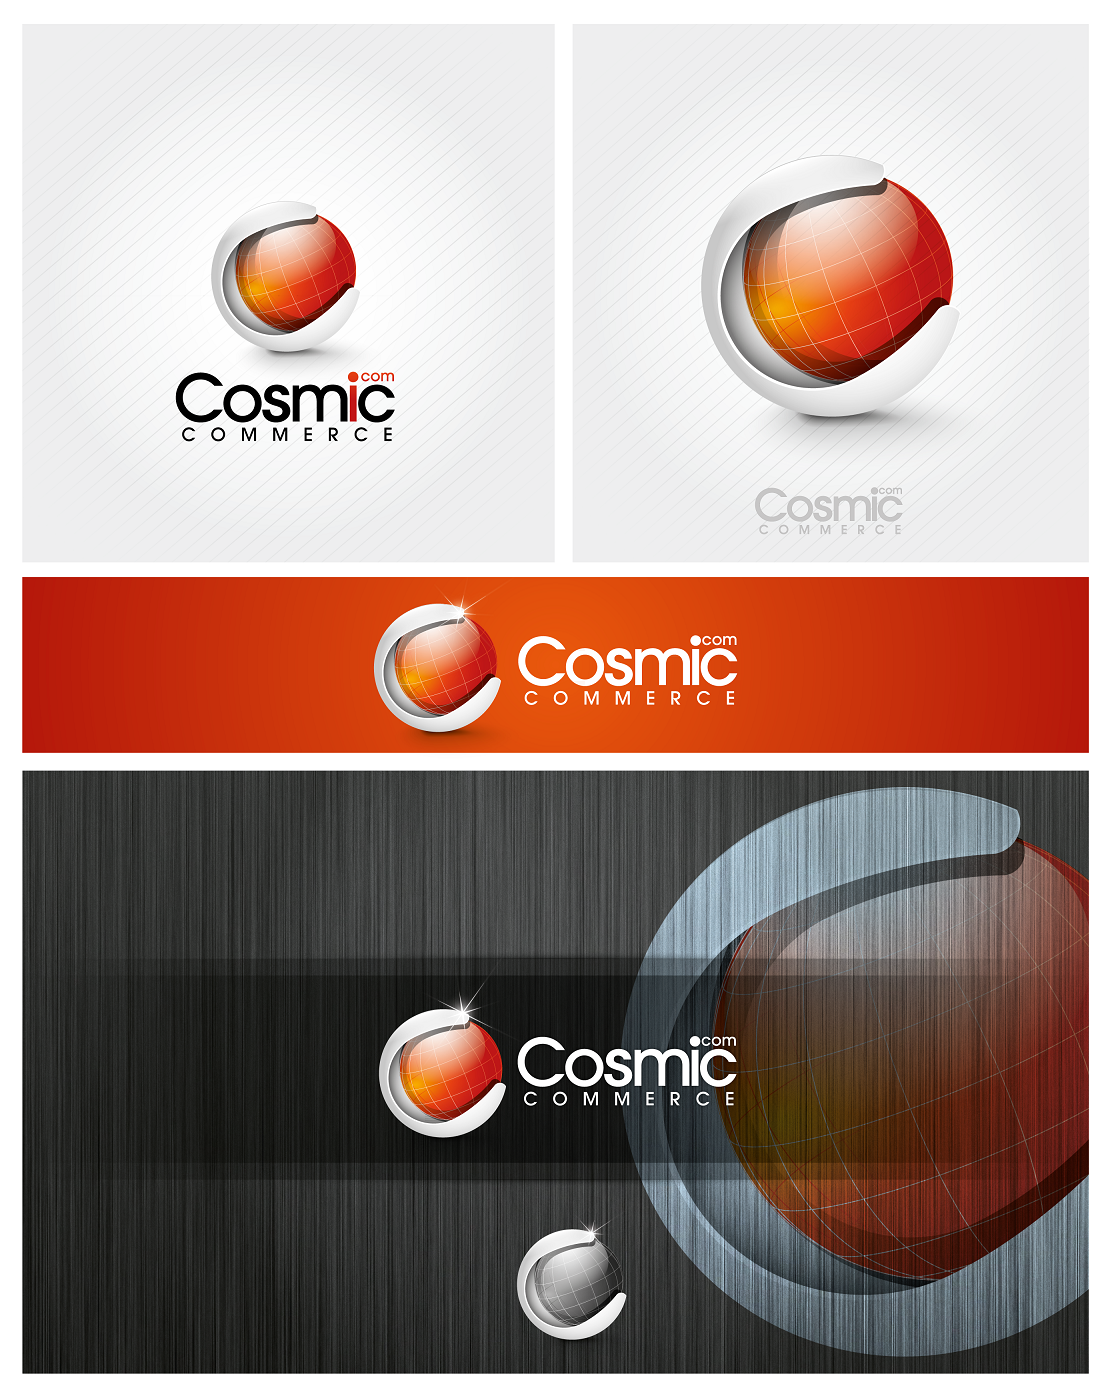 New logo wanted for CosmicCommerce.com